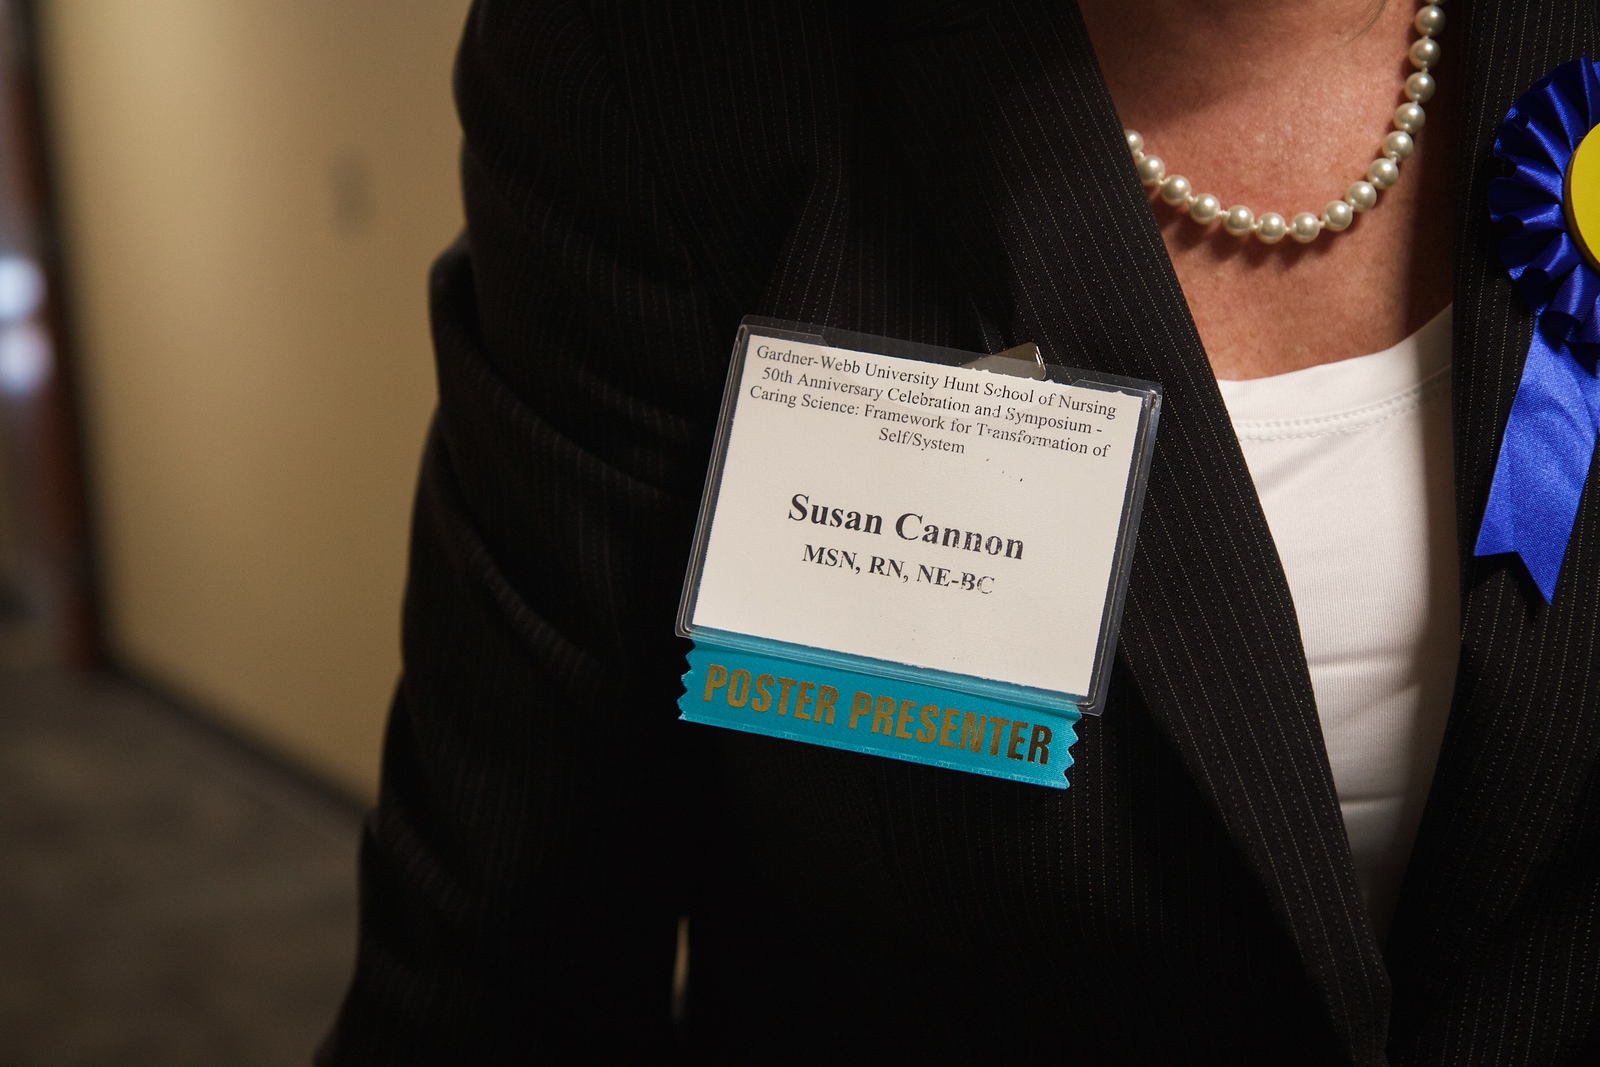 Nursing 50th Anniversary. Susan Cannon, currently enrolled in the doctoral program at Gardner-Webb, serves as the Assistant Vice President of Inpatient Nursing Services at Carolina HealthCare Systems in Lincoln. Her research project and poster presentation was voted by peers as the people's choice.